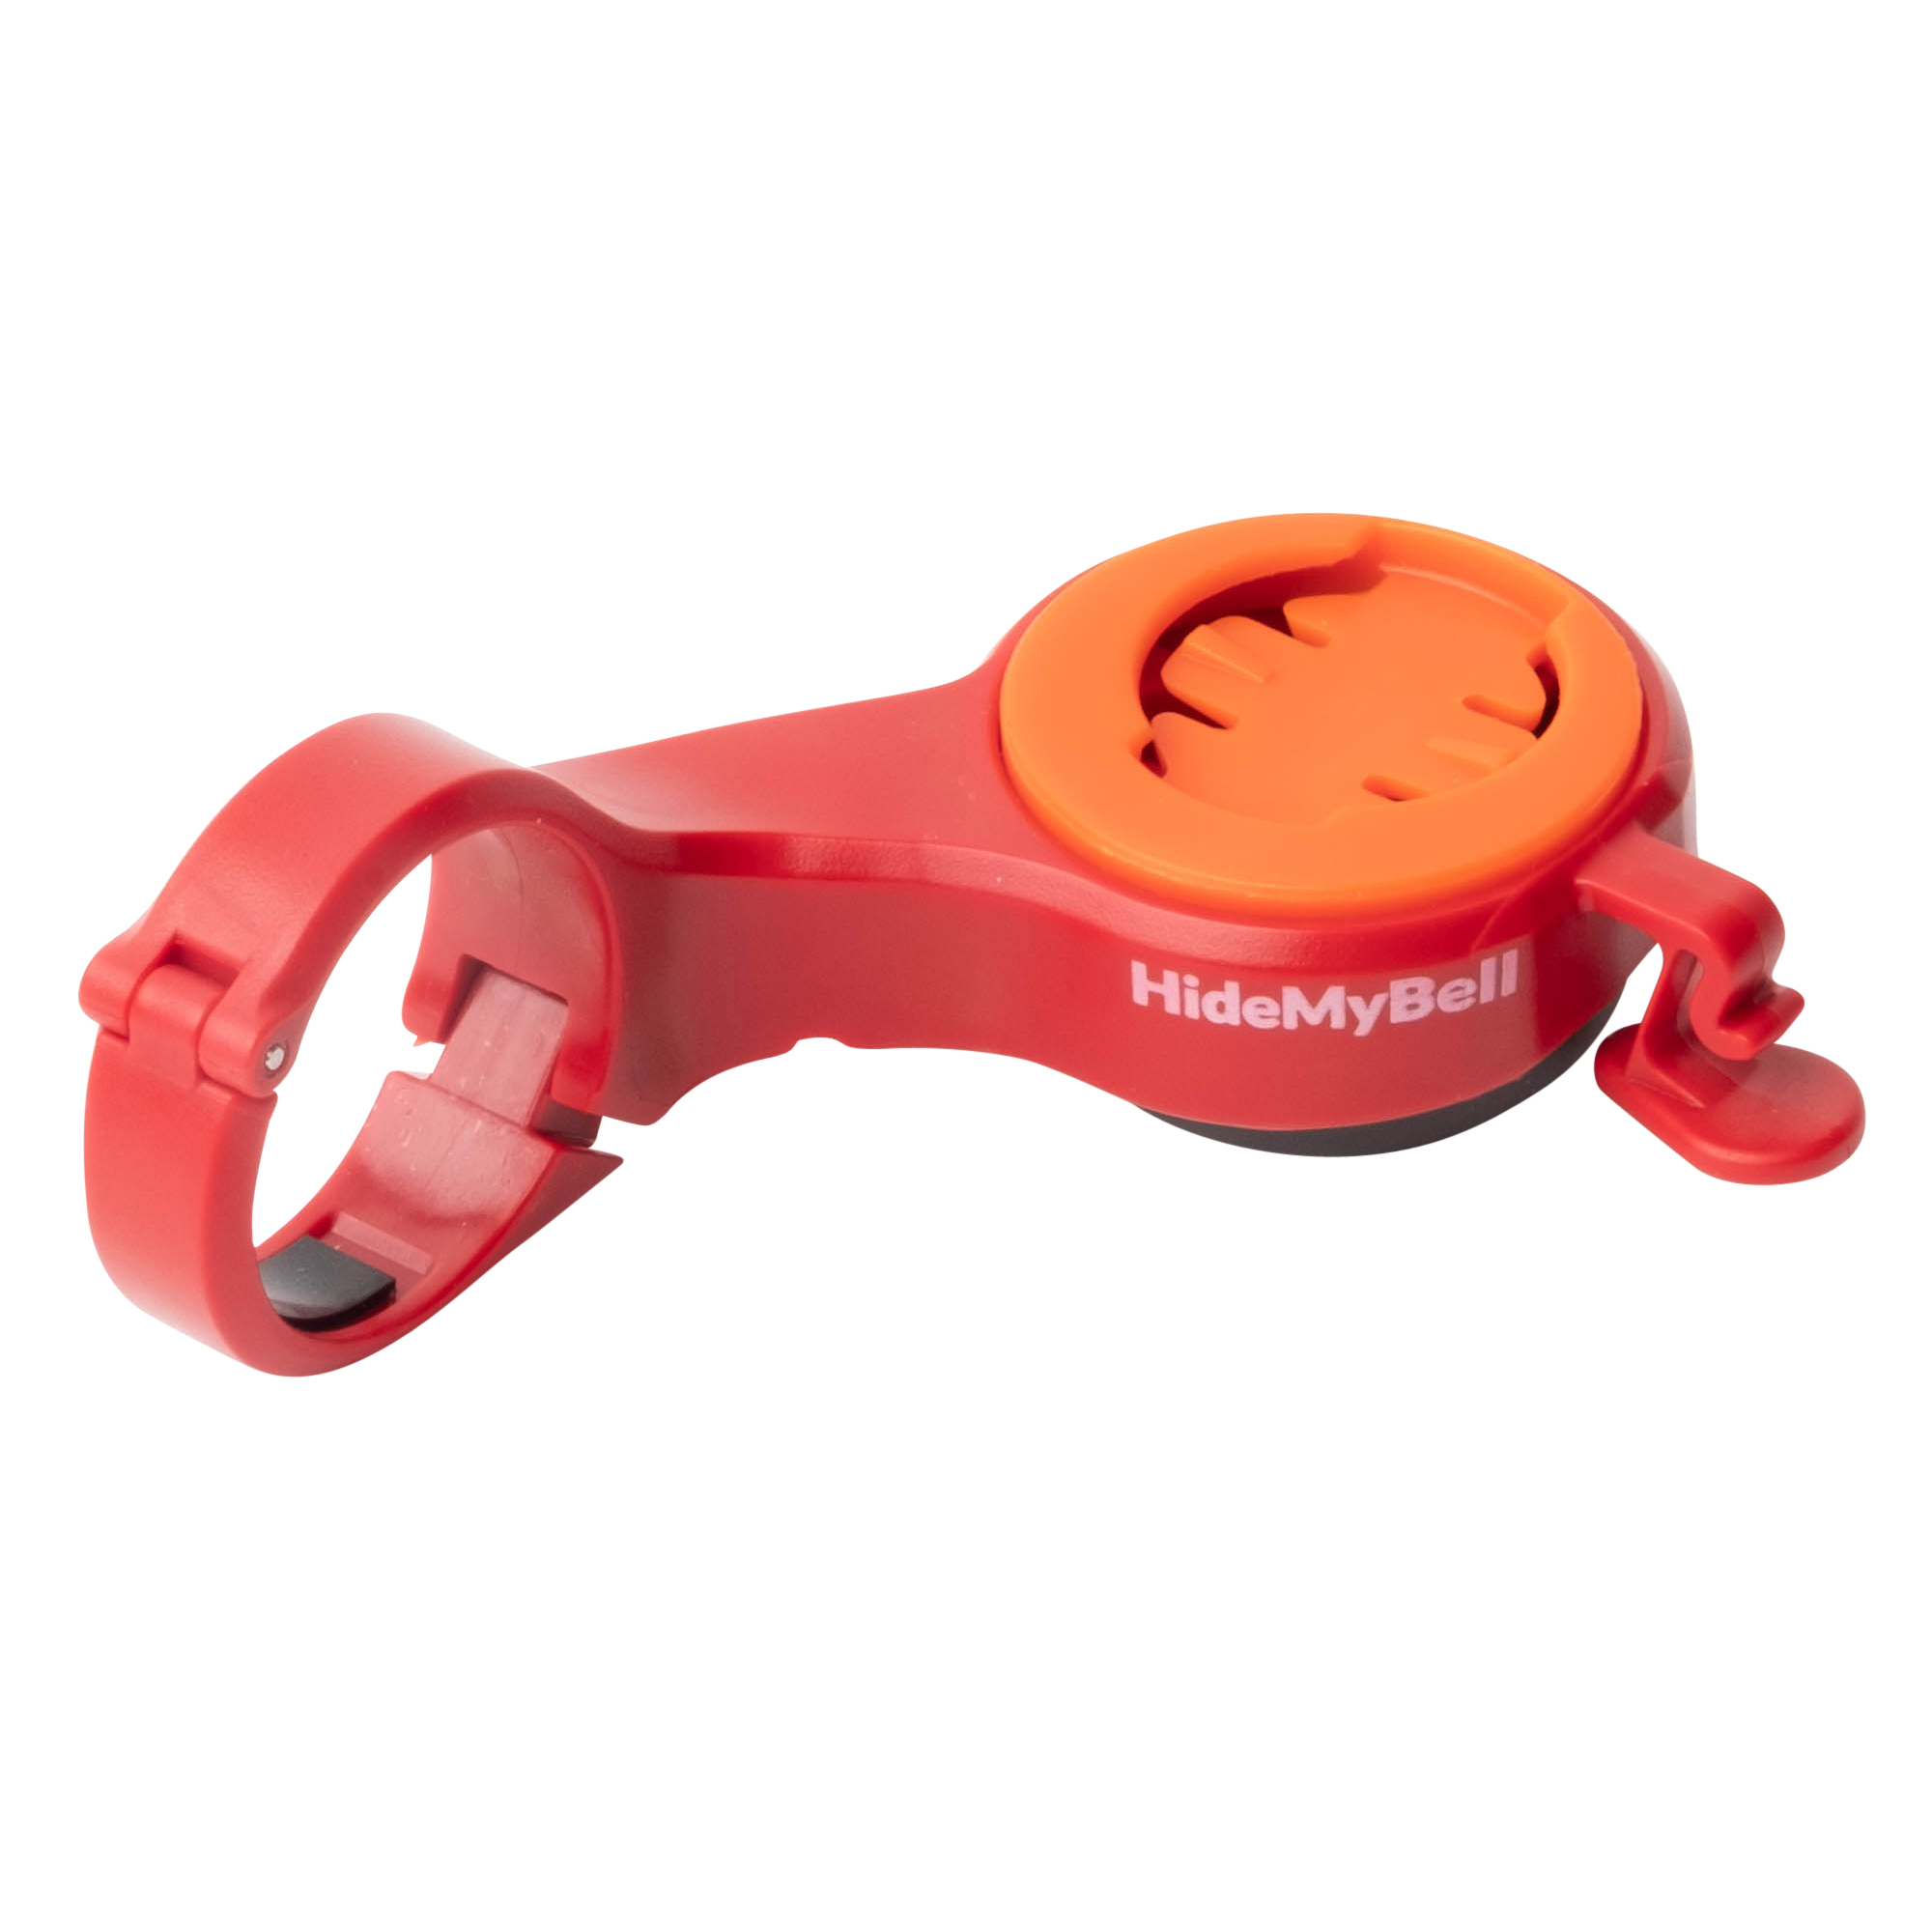 CloseTheGap HideMyBell mini red